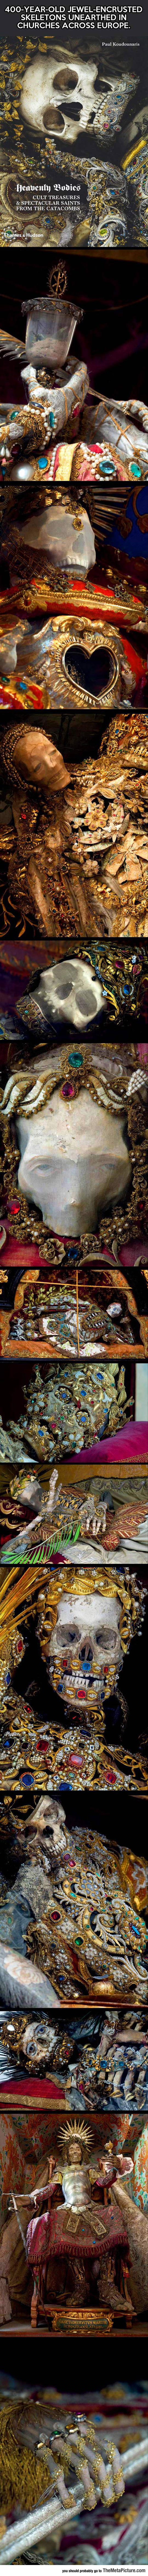 Skeletons In Churches Across Europe